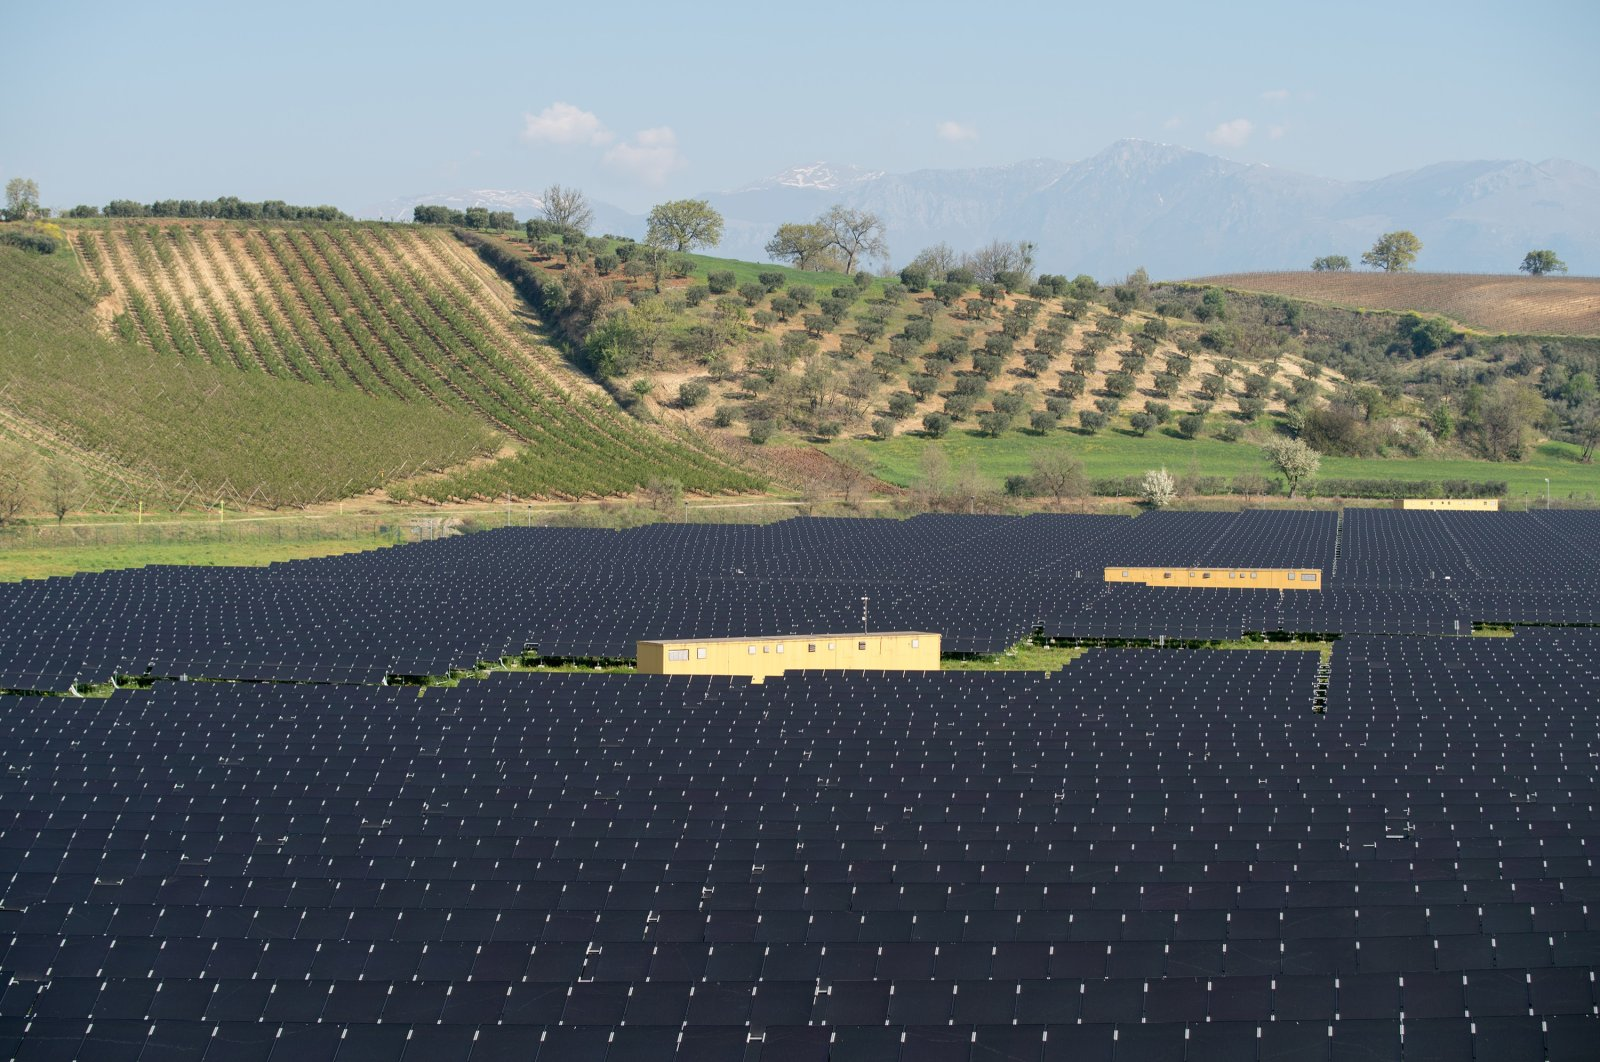 Solar panels seen in a rural area in this undated file photo, Sila National Park, Calabria region, Italy. (Shutterstock Photo by Dmytro Surkov)